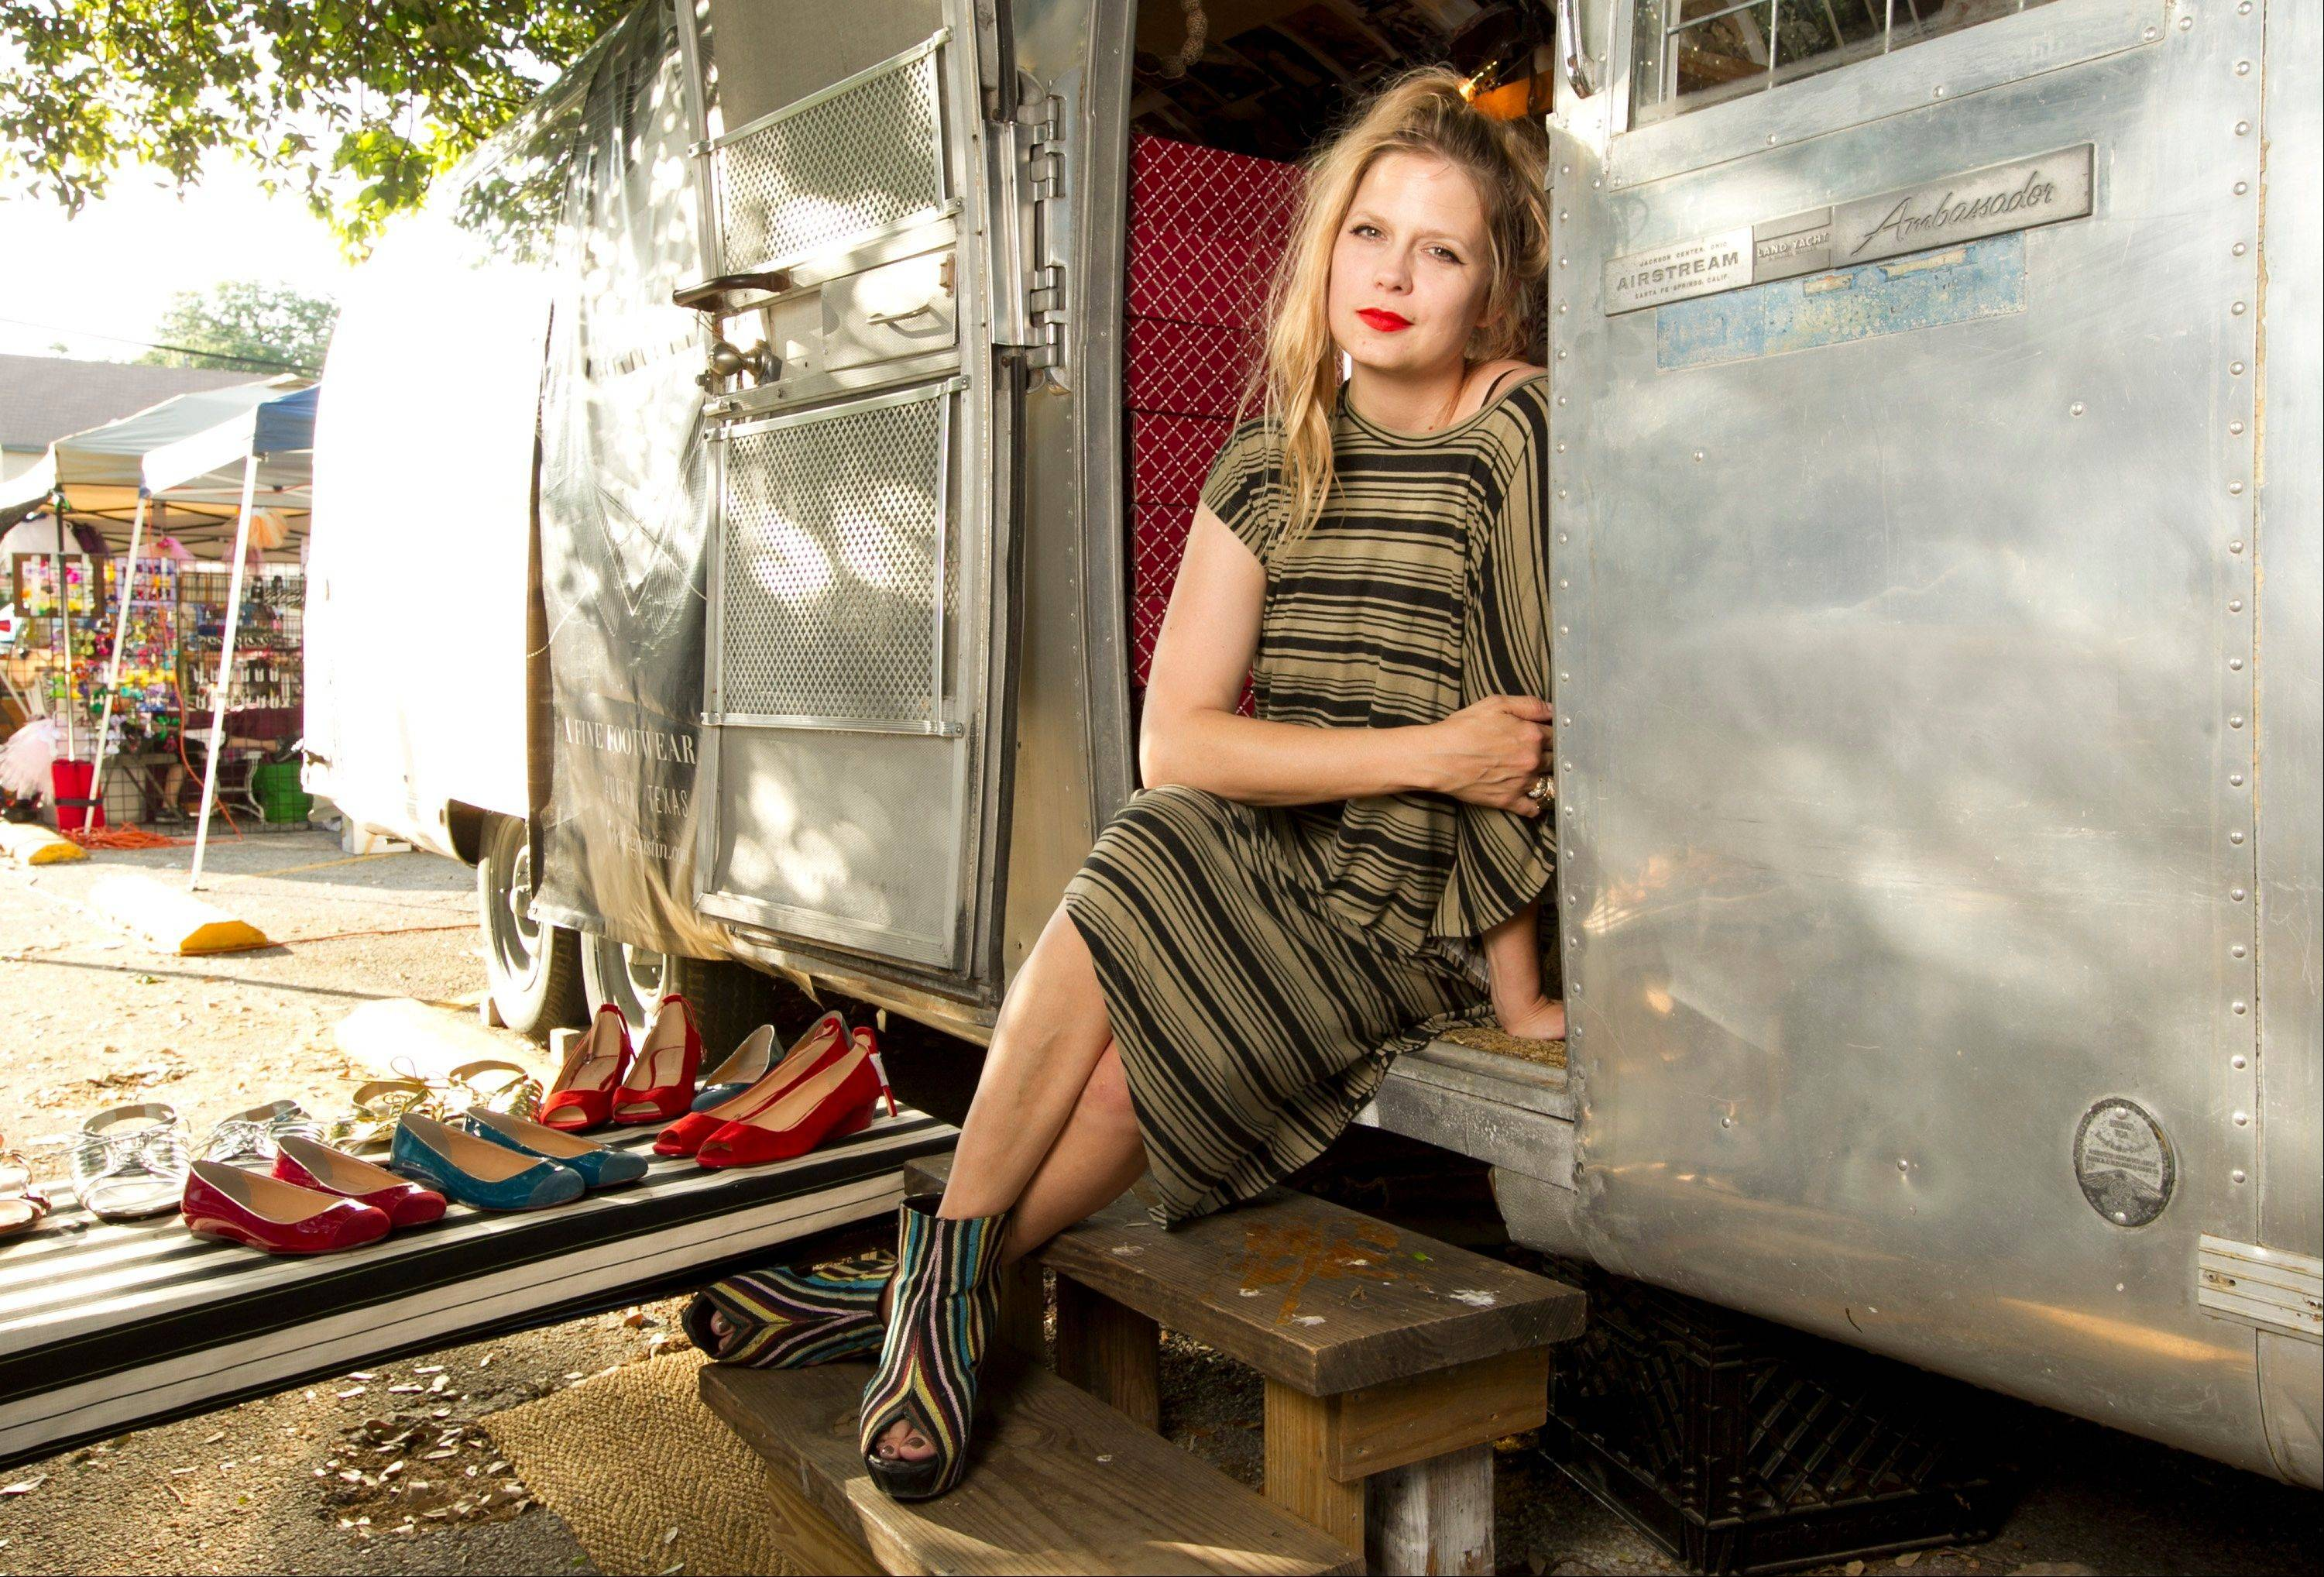 Sarah Ellison Lewis, the owner of Bootleg, a shoe trailer with hard-to-find footwear labels poses in Austin, Texas, on April 5. When the former fashion editor wanted to open an upscale, funky shoe boutique, she had sticker shock every time she saw the price for a store lease. She worried the hefty rent would limit her ability to turn a profit so she bought a 30-foot trailer, decorated it with vintage wallpaper photography and reclaimed wooden benches and signed a lease on a parking spot between a chic hotel and popular brunch spot in an eclectic neighborhood for a quarter of the cost of a traditional store.